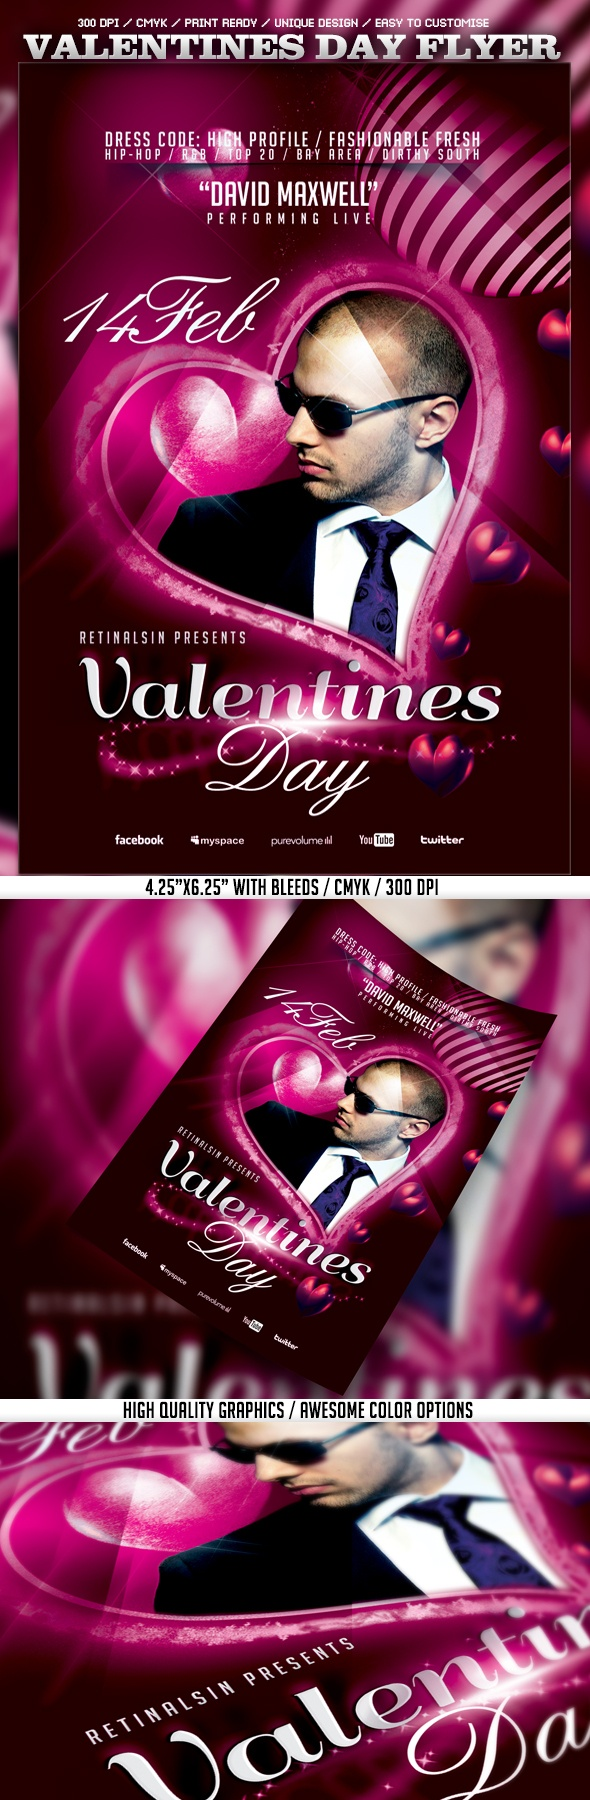 flyers valentine's day package